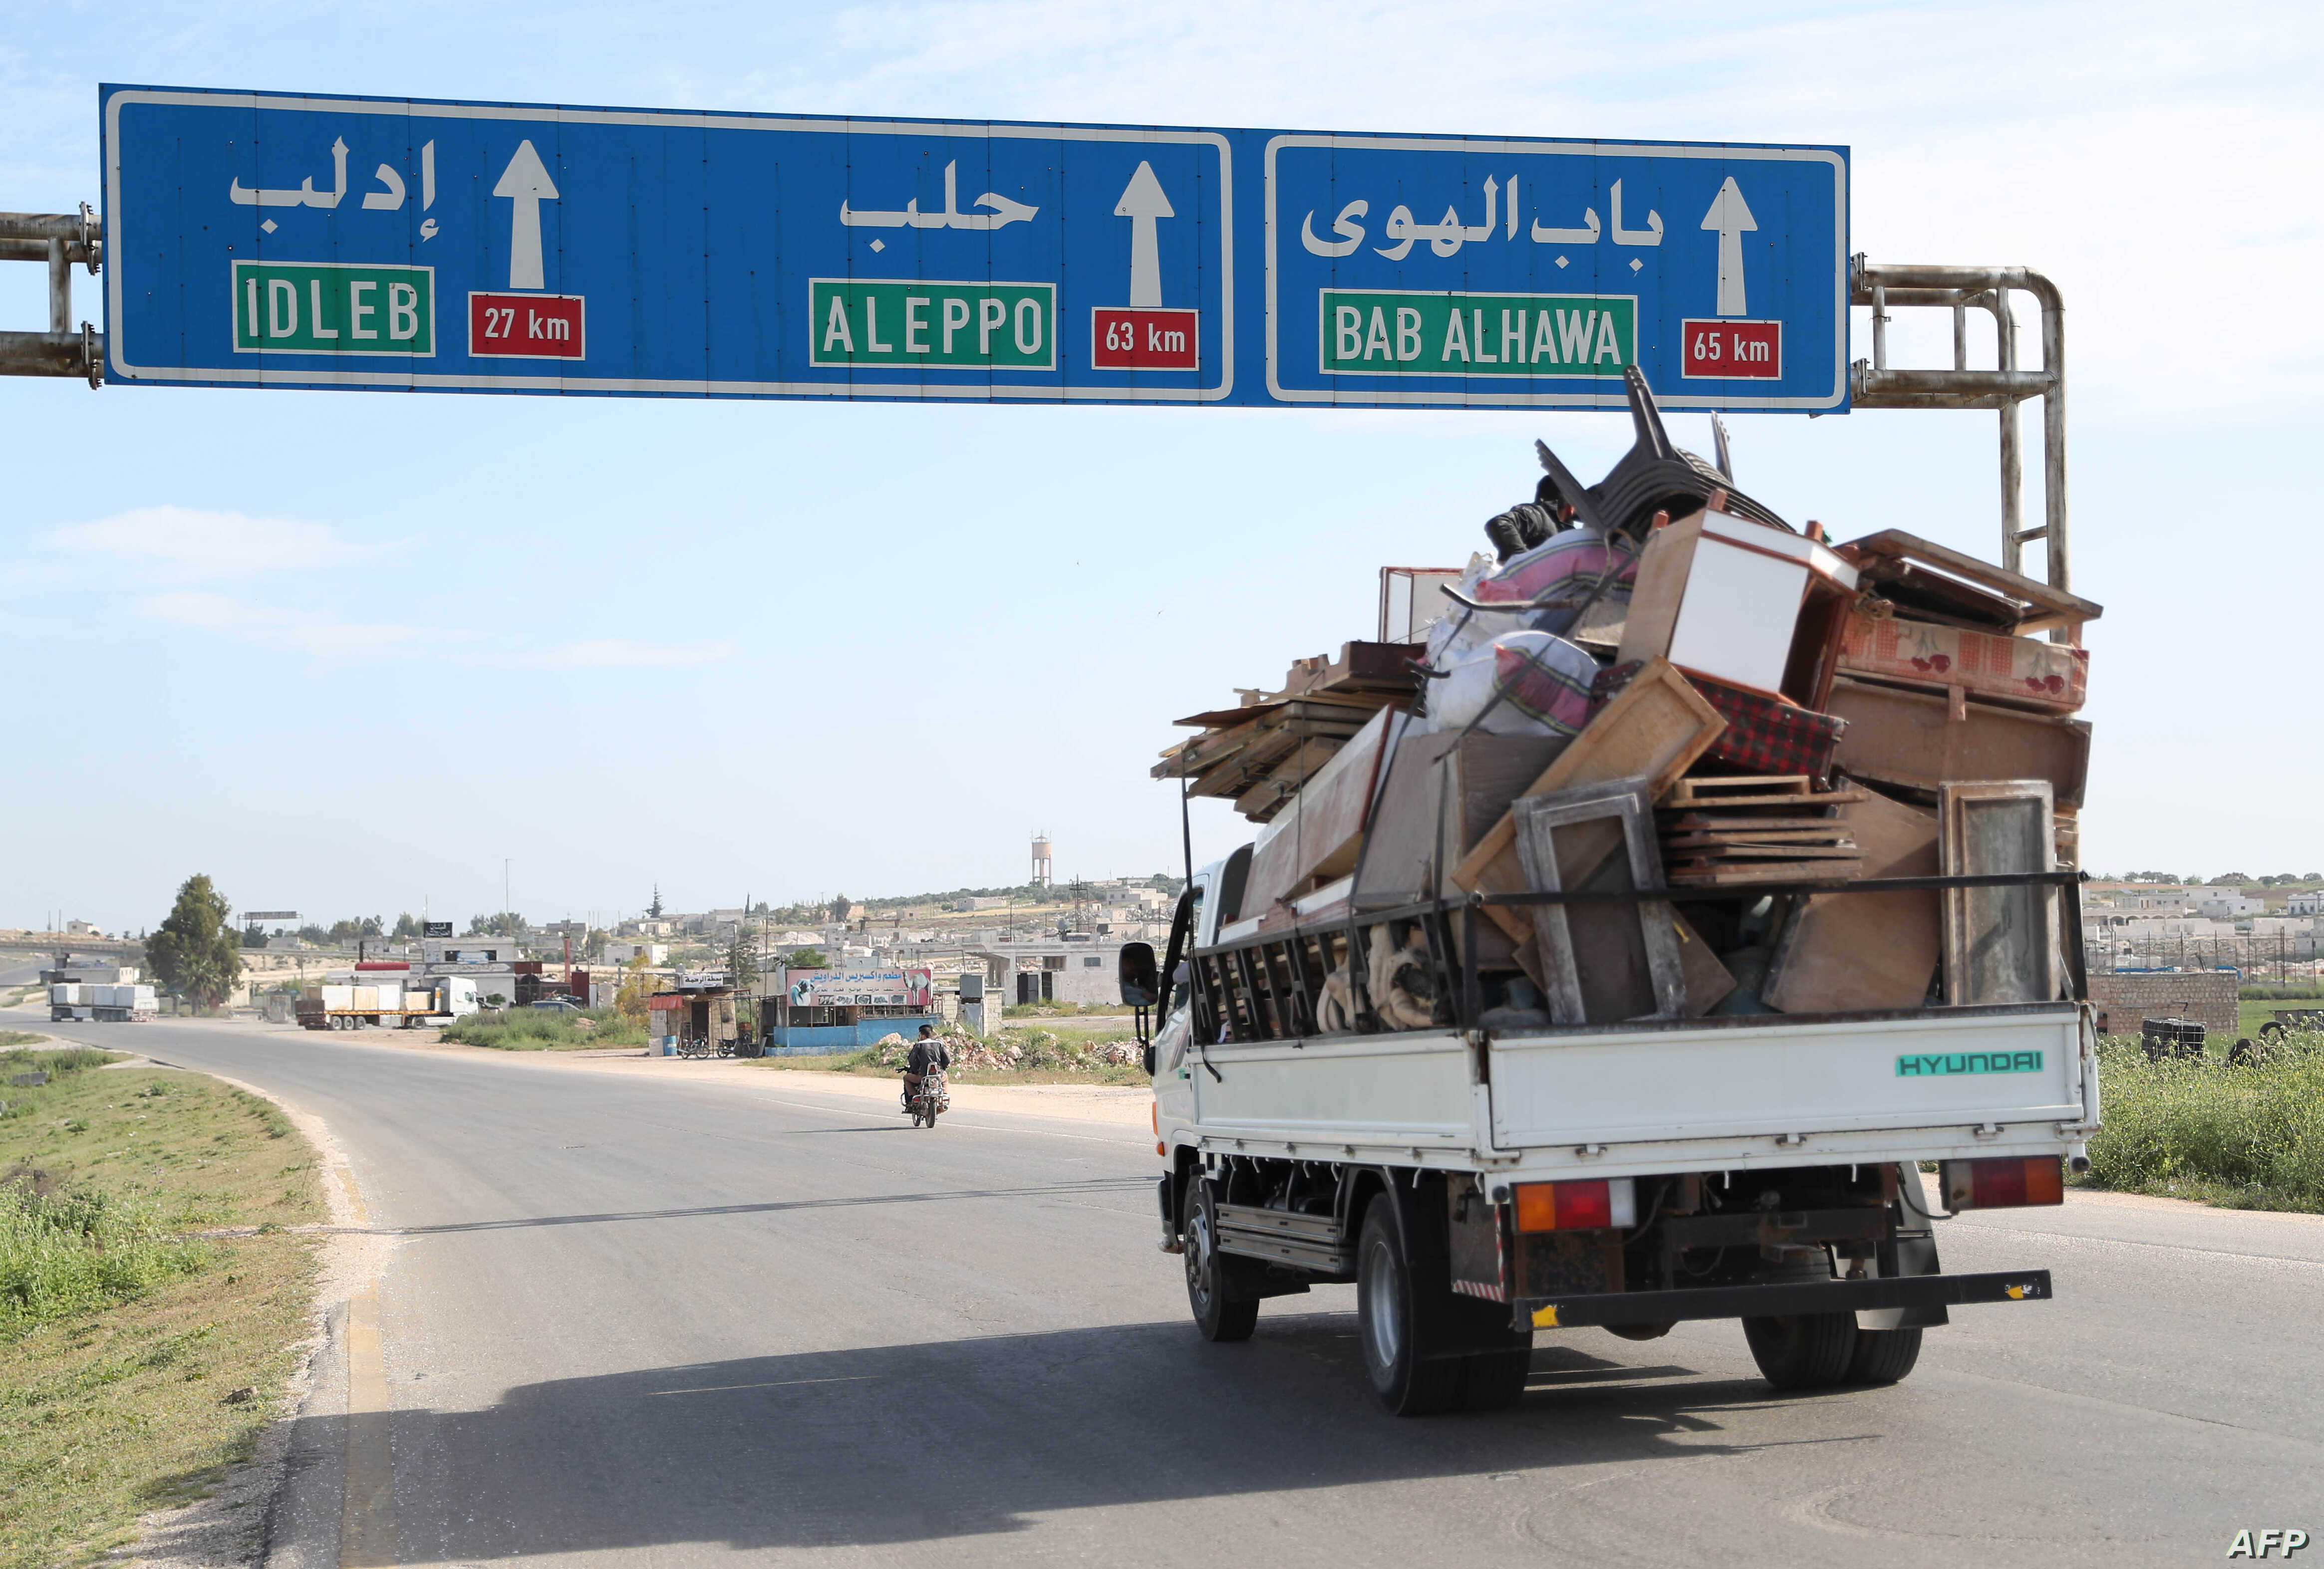 Residents flee with their belongings during reported shelling in rebel-held Idlib province, Syria, May 3, 2019.